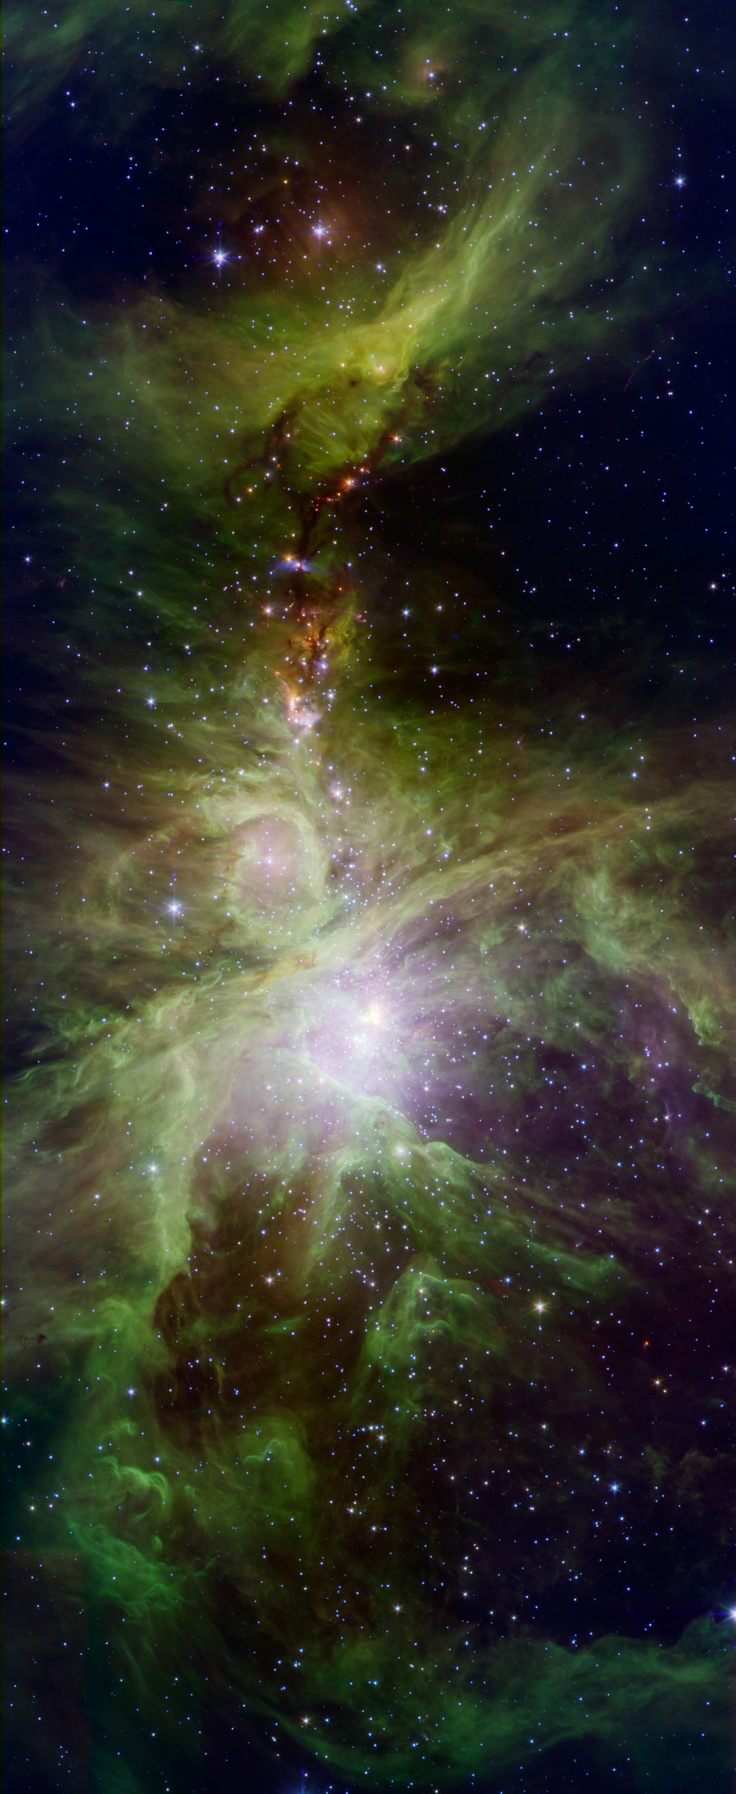 This picture from NASA's Spitzer Space Telescope. The image shows the Orion nebula, a happening place where stars are born. The young stars dip and peak in brightness due to a variety of reasons. Shifting cold and hot spots on the stars' surfaces cause brightness levels to change, in addition to surrounding disks of lumpy planet-forming material, which can obstruct starlight. Spitzer is keeping tabs on the young stars, providing data on their changing ways.